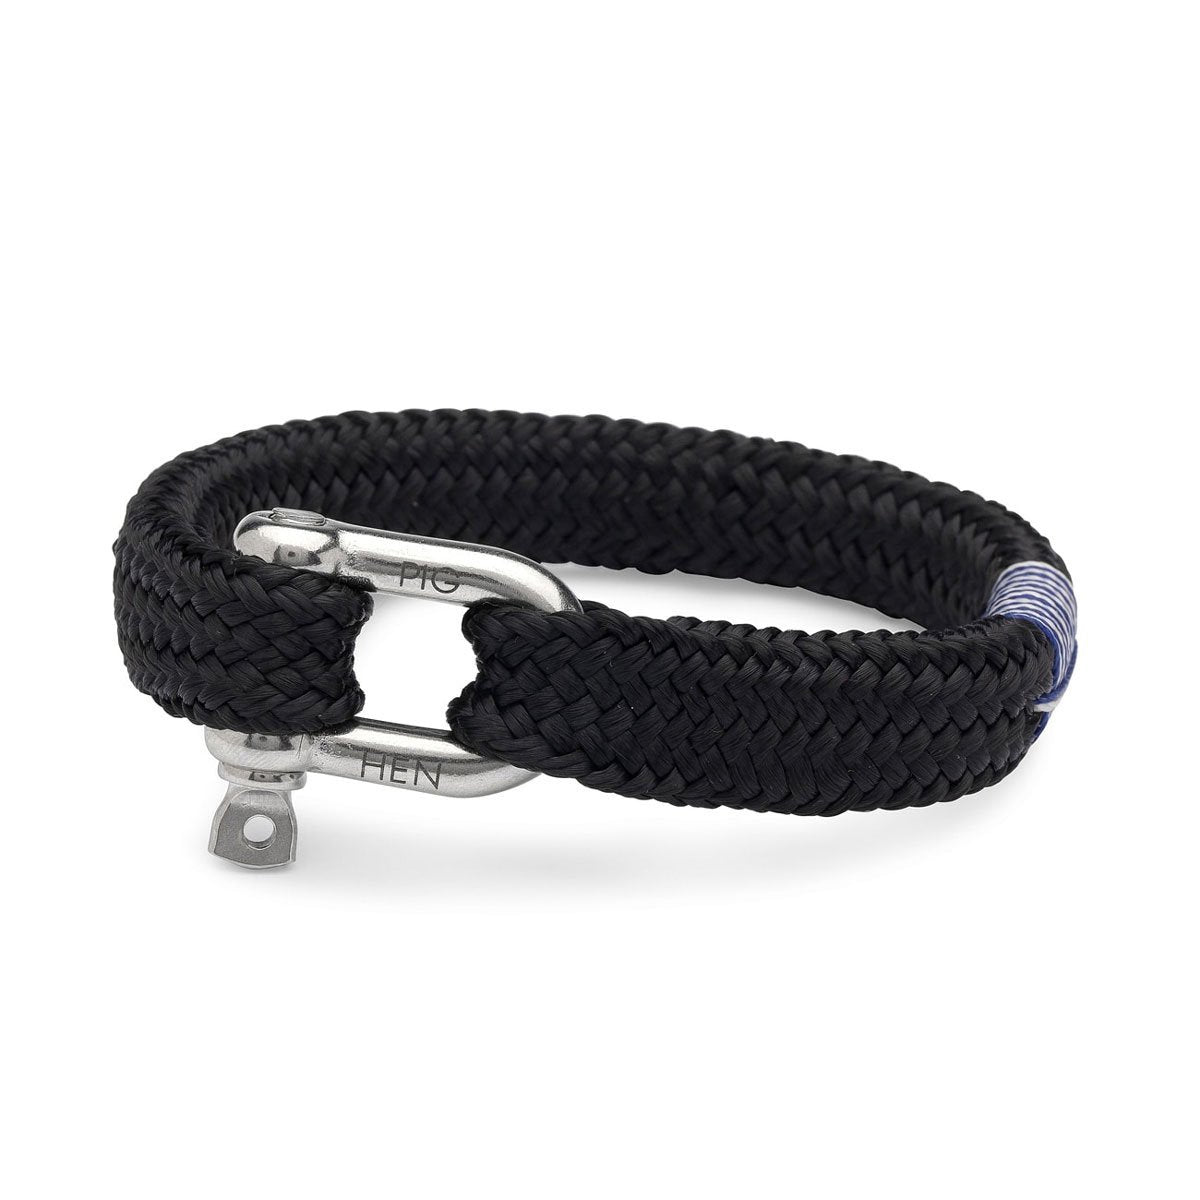 Pig & Hen | Gorgeous George | Men's Rope Bracelet - Black | Silver - Sailing Rope Bracelet